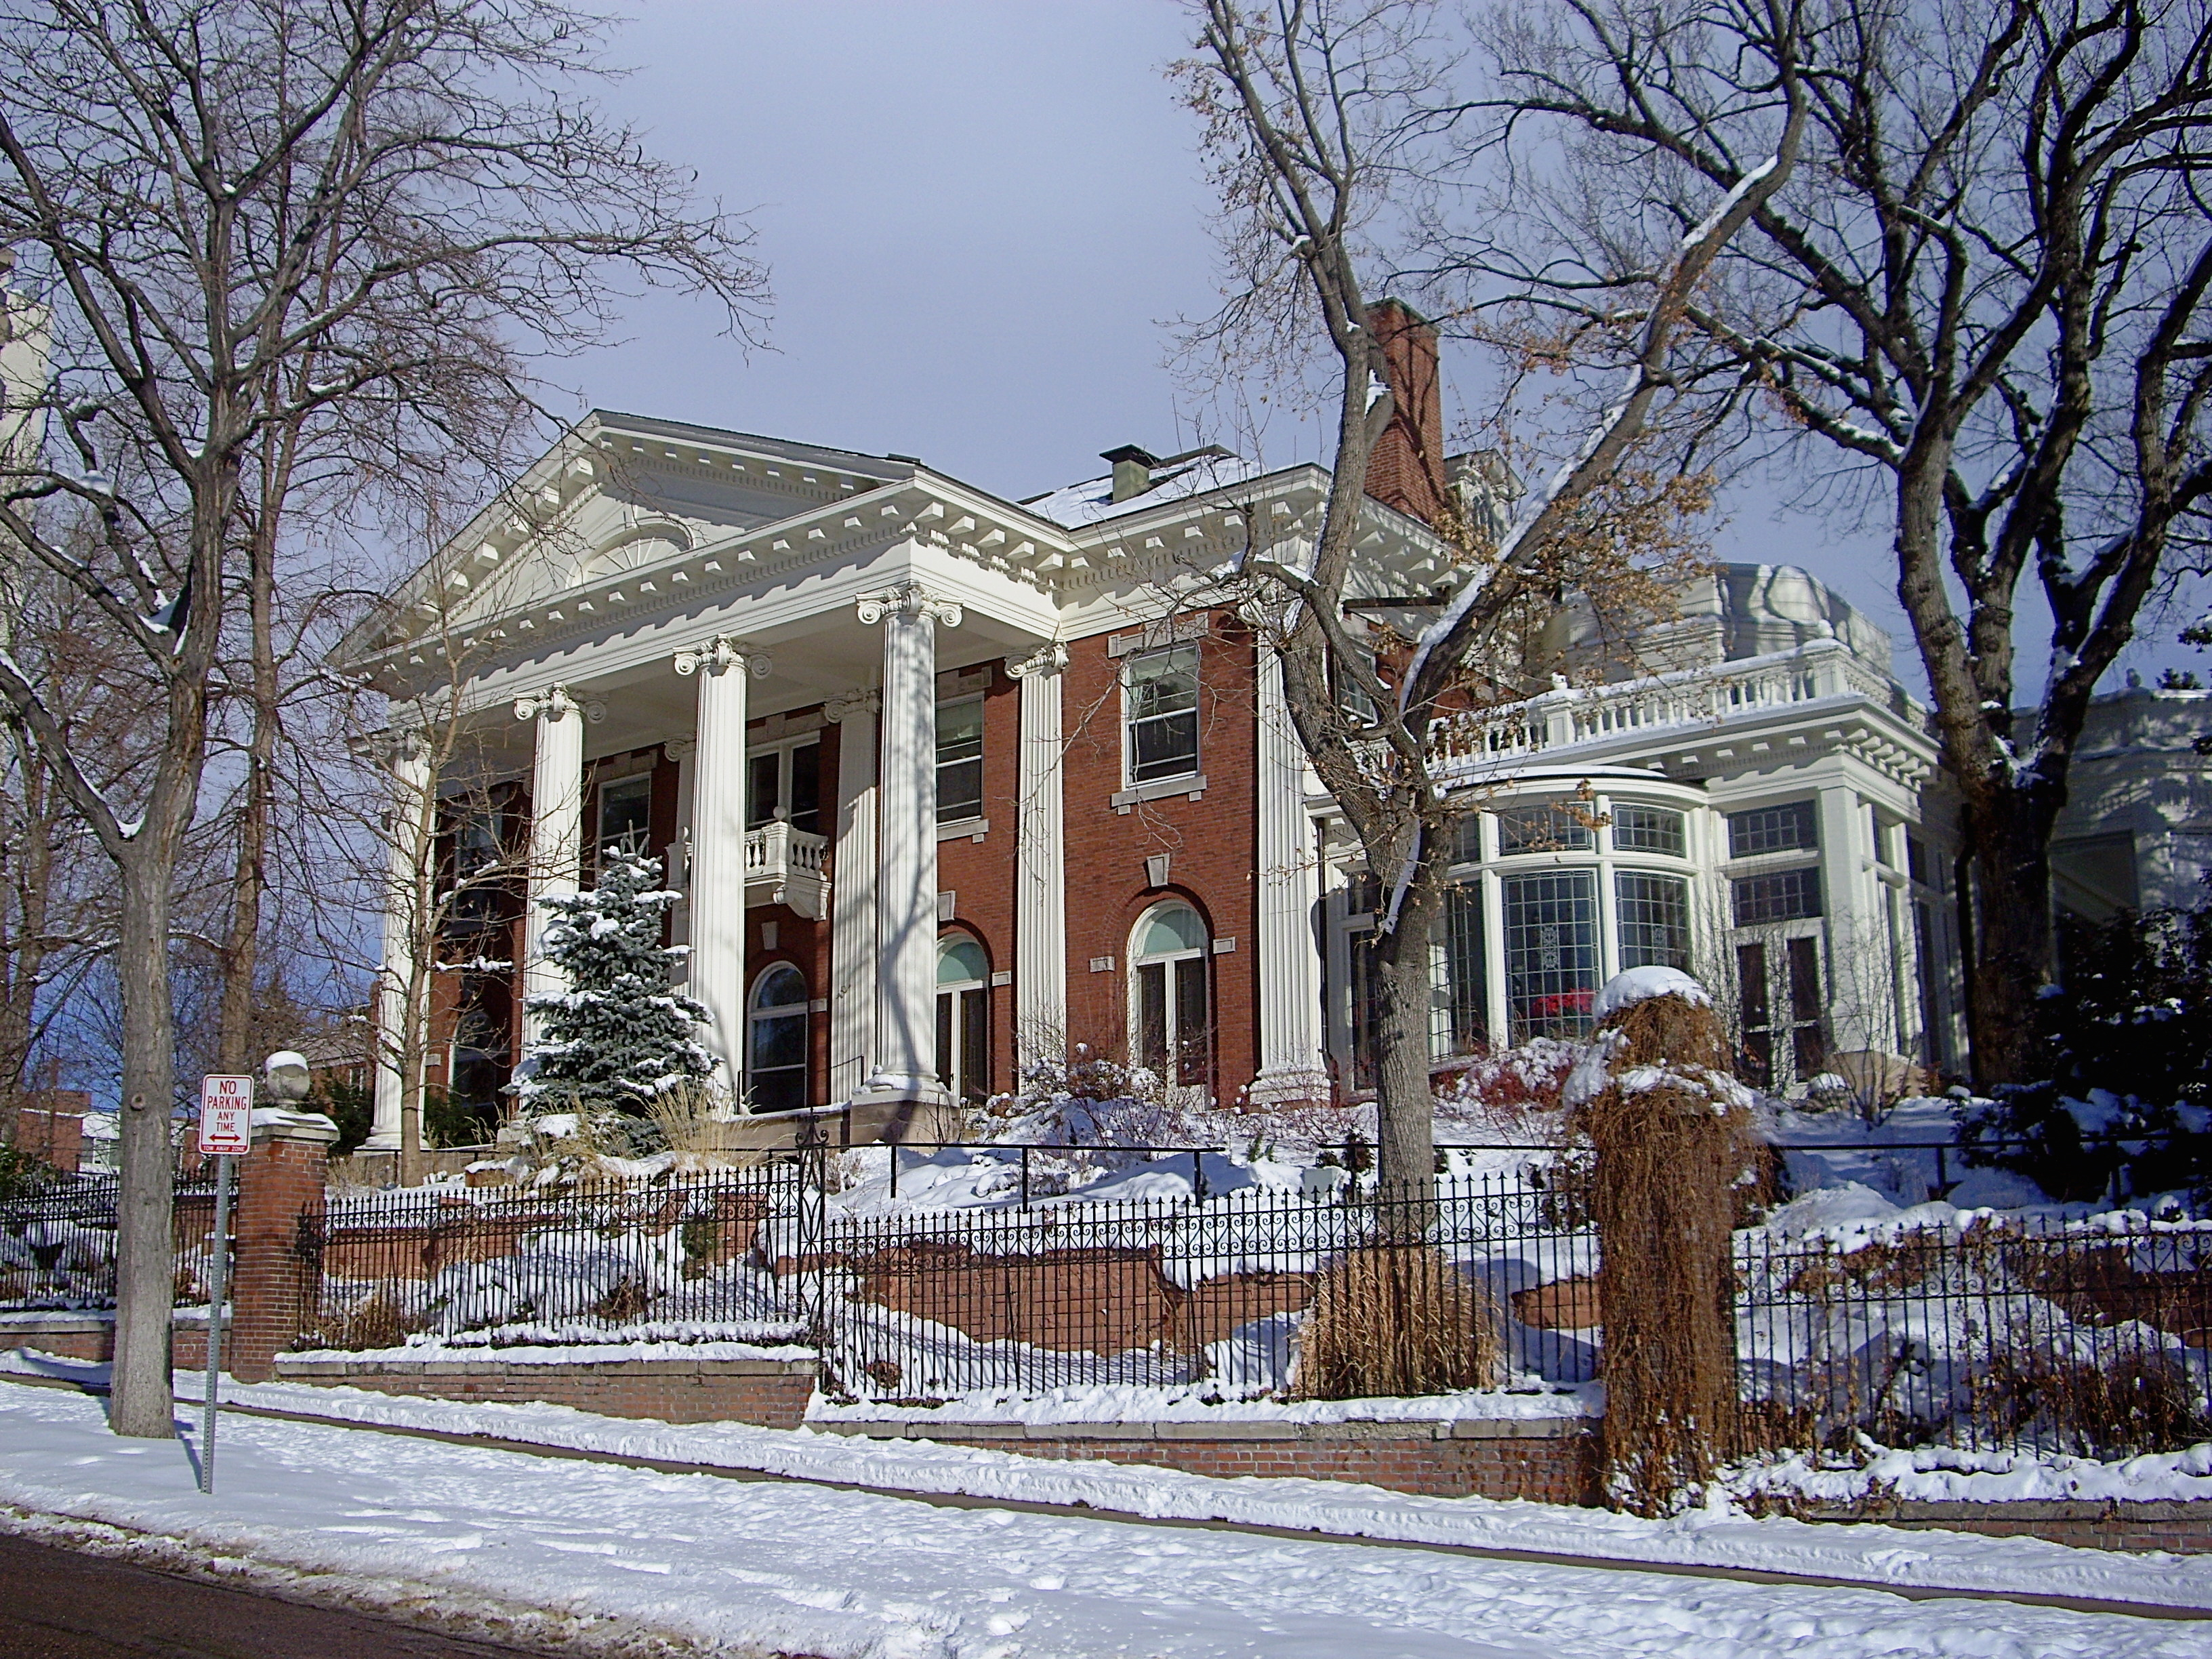 The Colorado Governor's Mansion seen in the winter.